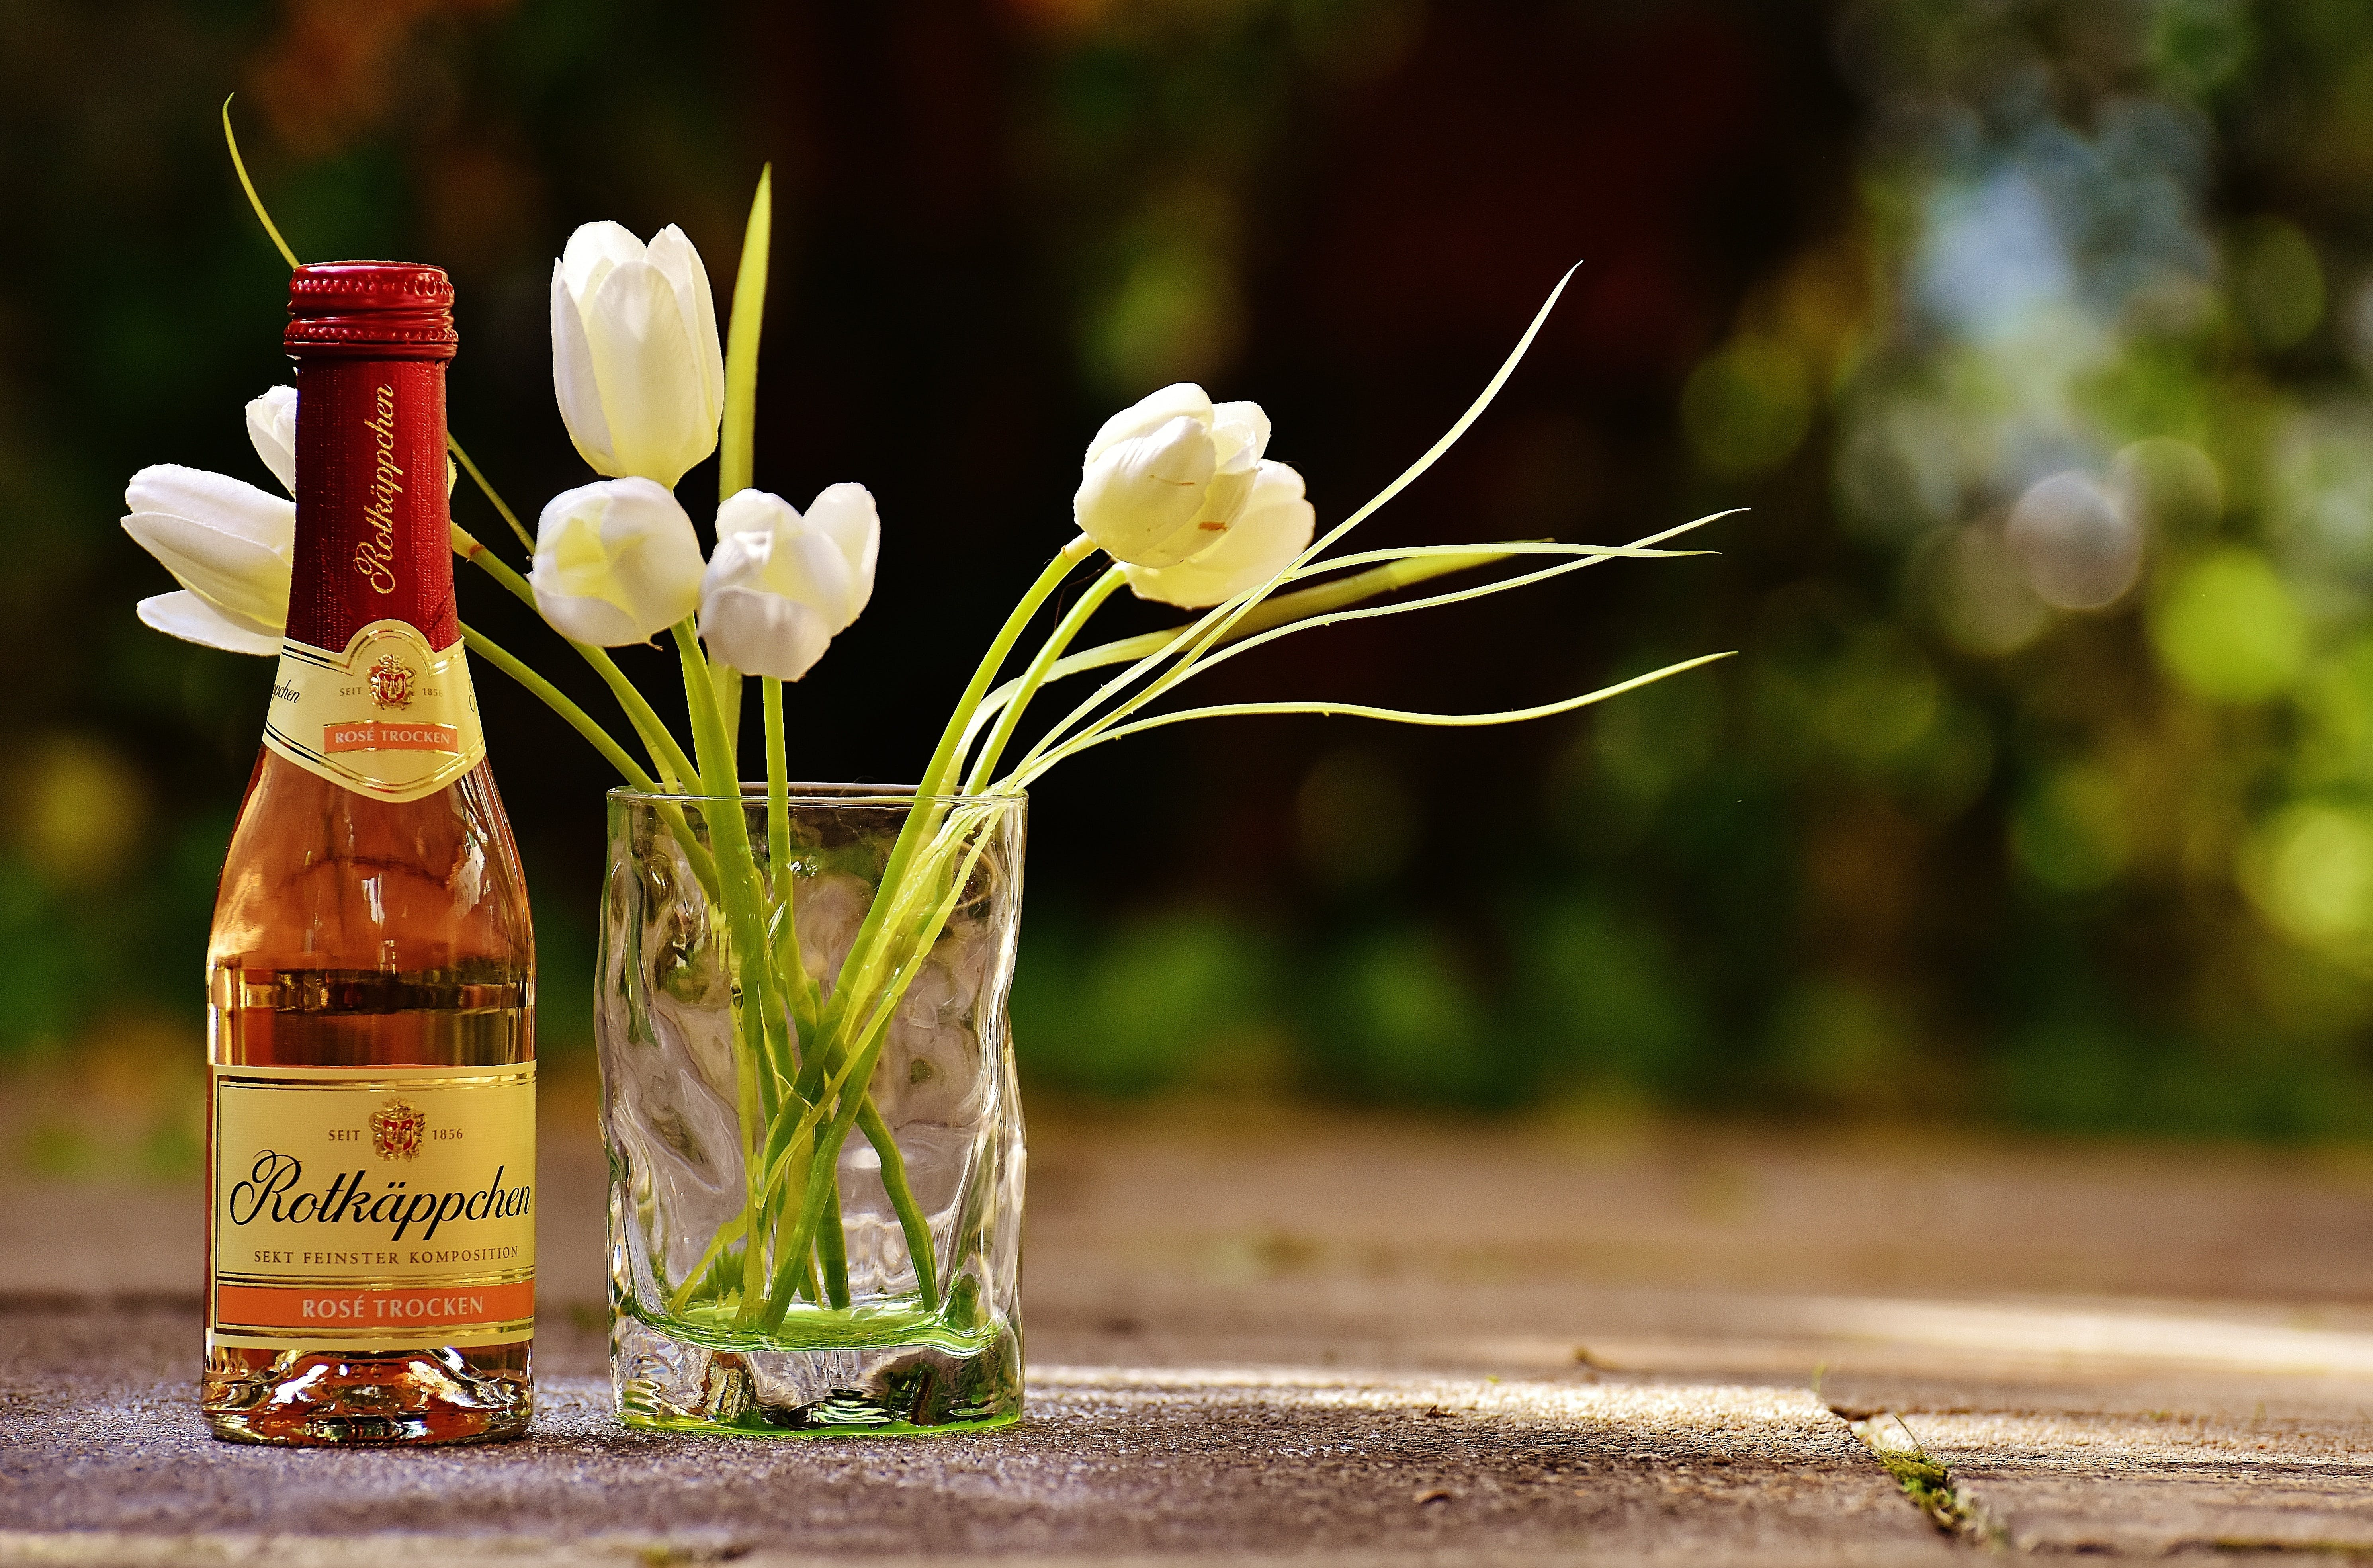 Free stock photo of flowers, alcohol, drink, glass